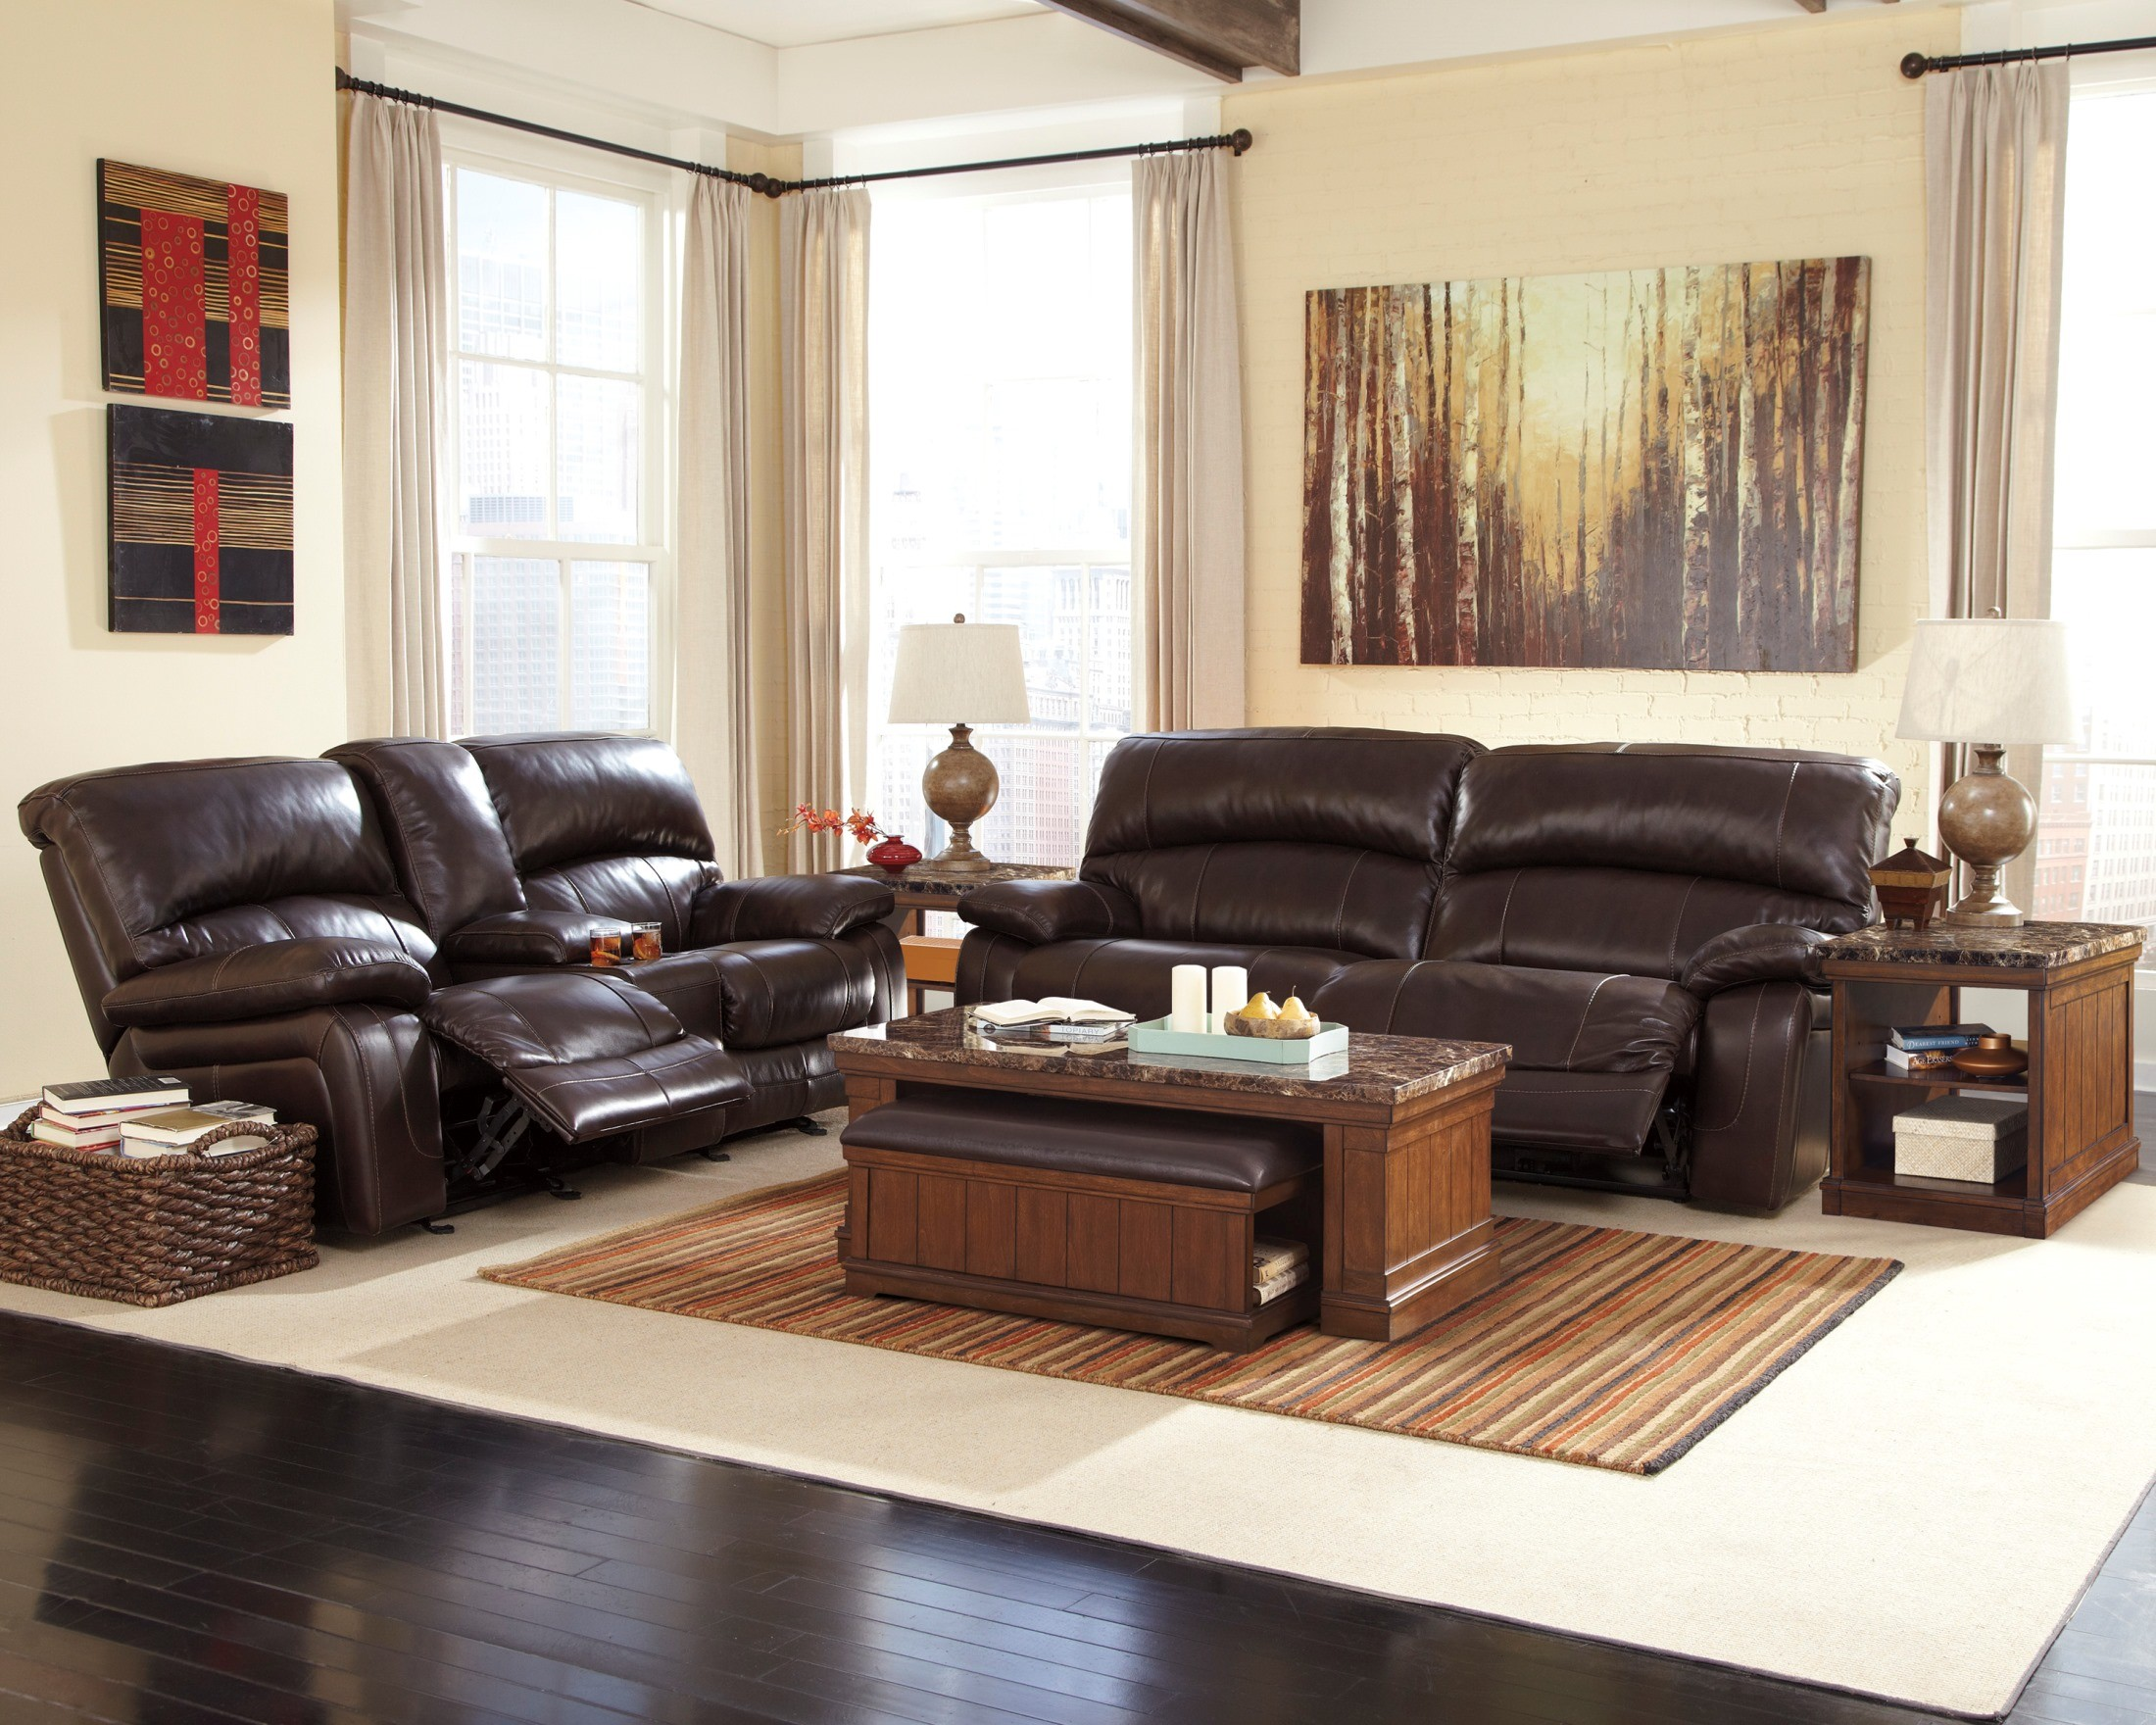 shipping free inspirations sofa darcy loveseat ashley size set design full andseat of and image